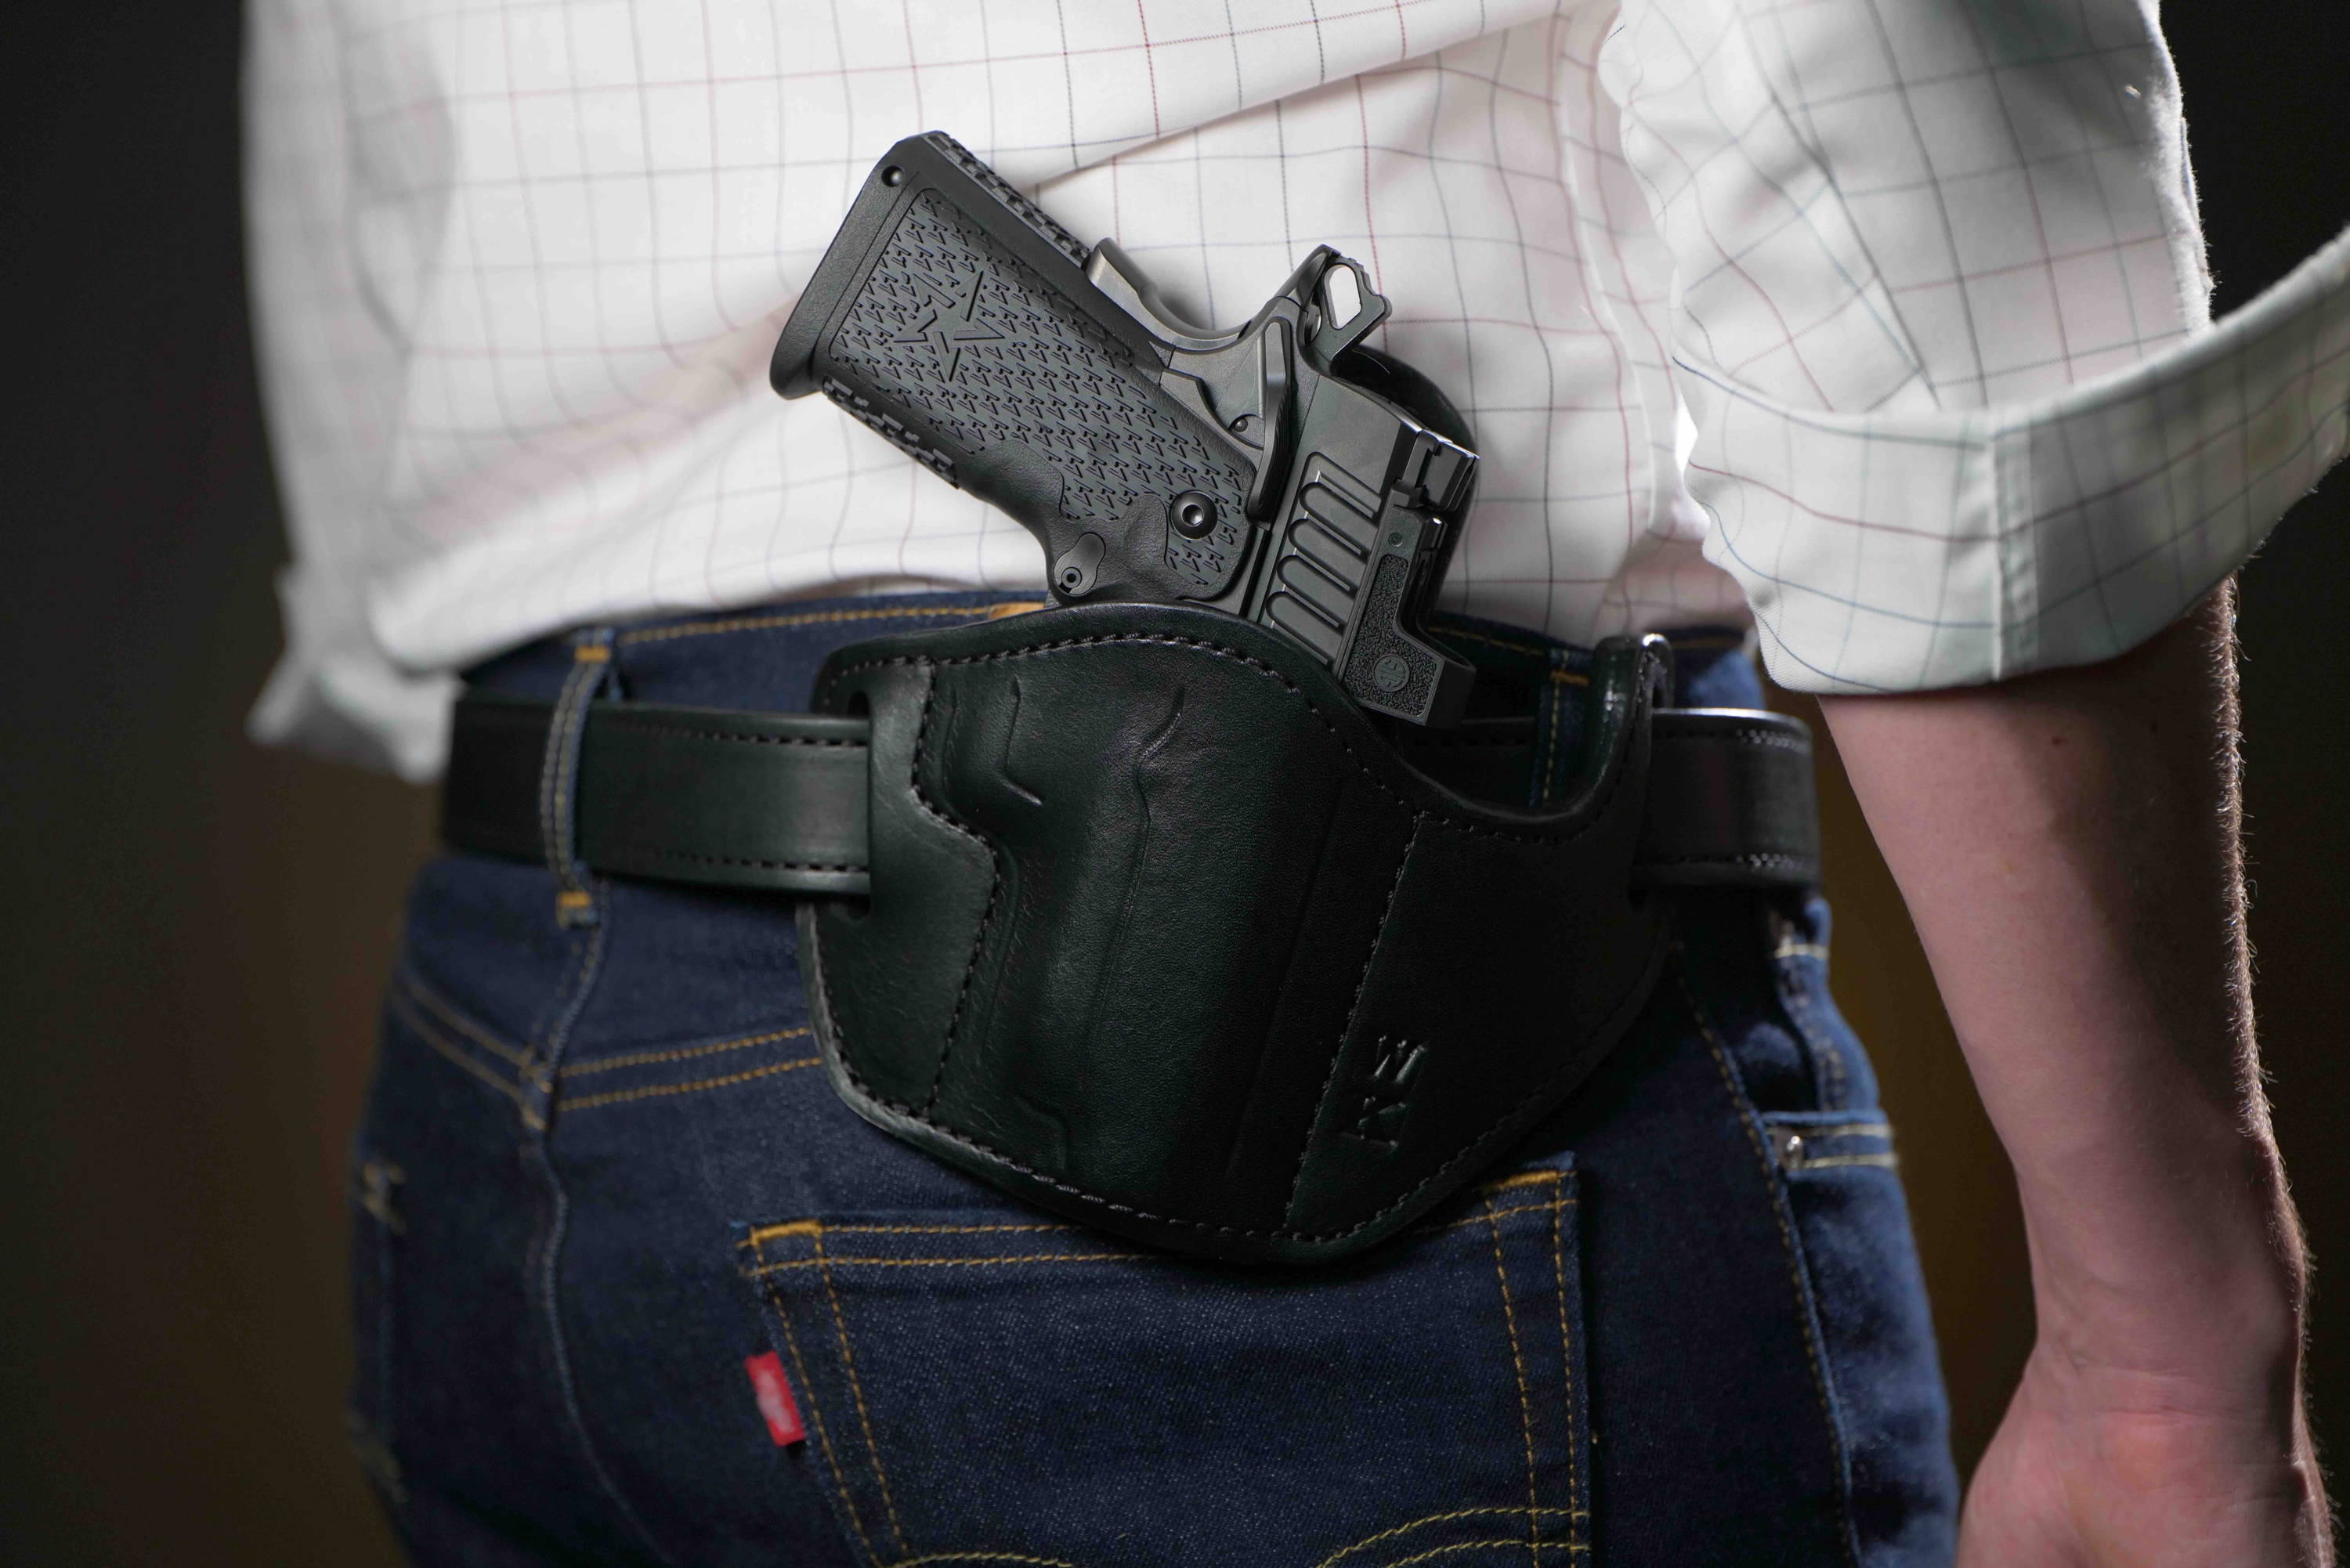 Red dot sight holster